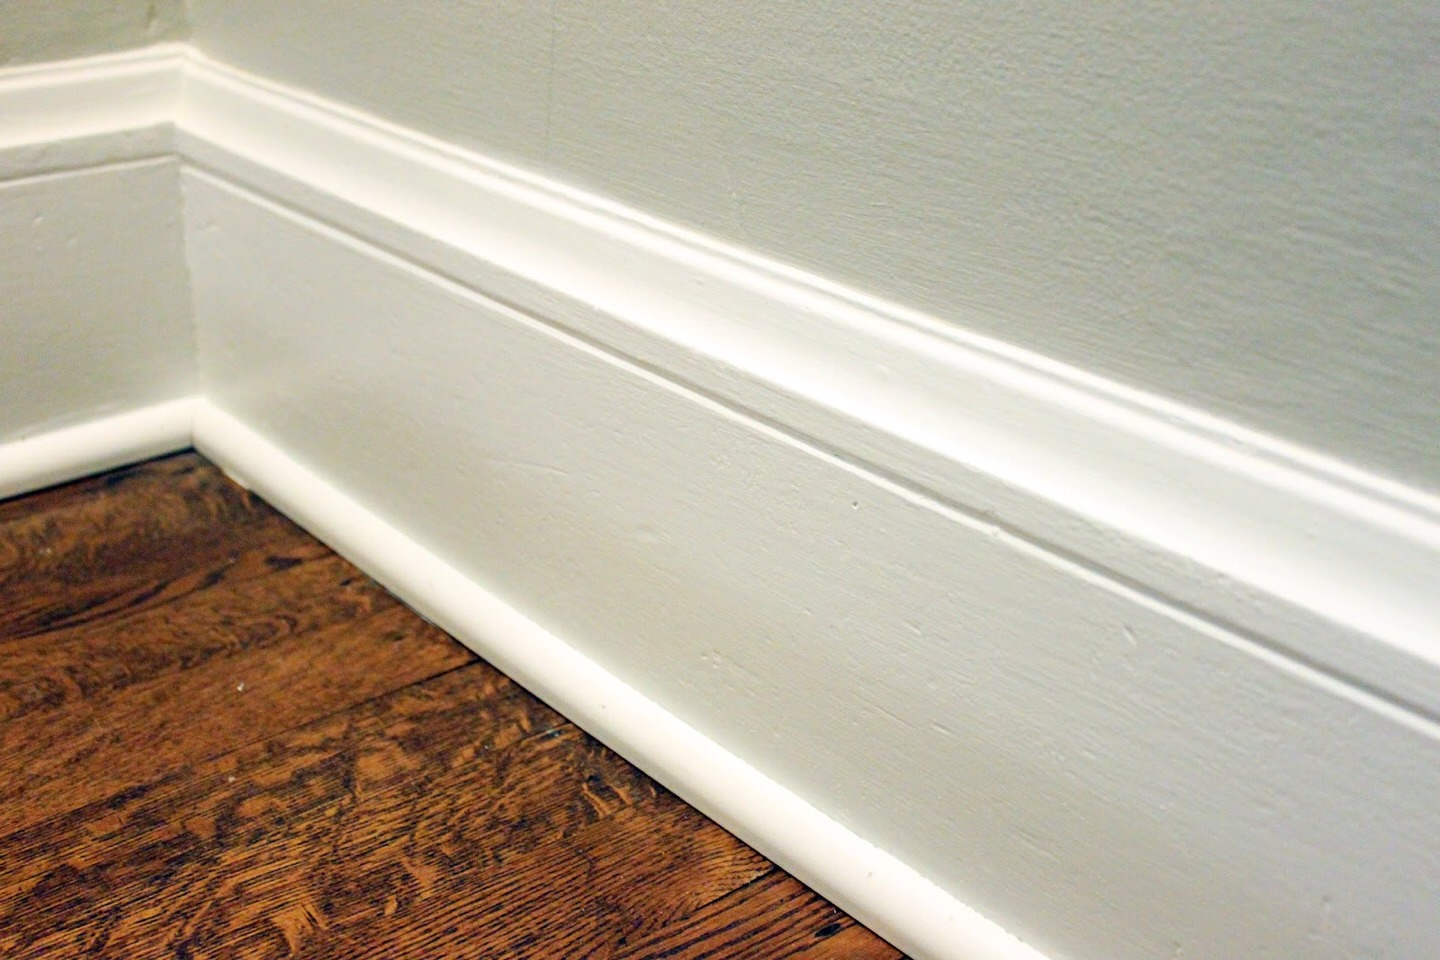 Baseboards. Scrub these puppy's down! Dust and dirt accumulate on these very quickly. Sometimes slapping a fresh coat of paint after you clean it can make it look like new. But most times you won't need that and just cleaning will do. I use dawn dish soap, water, and a used dryer sheet. Works great!